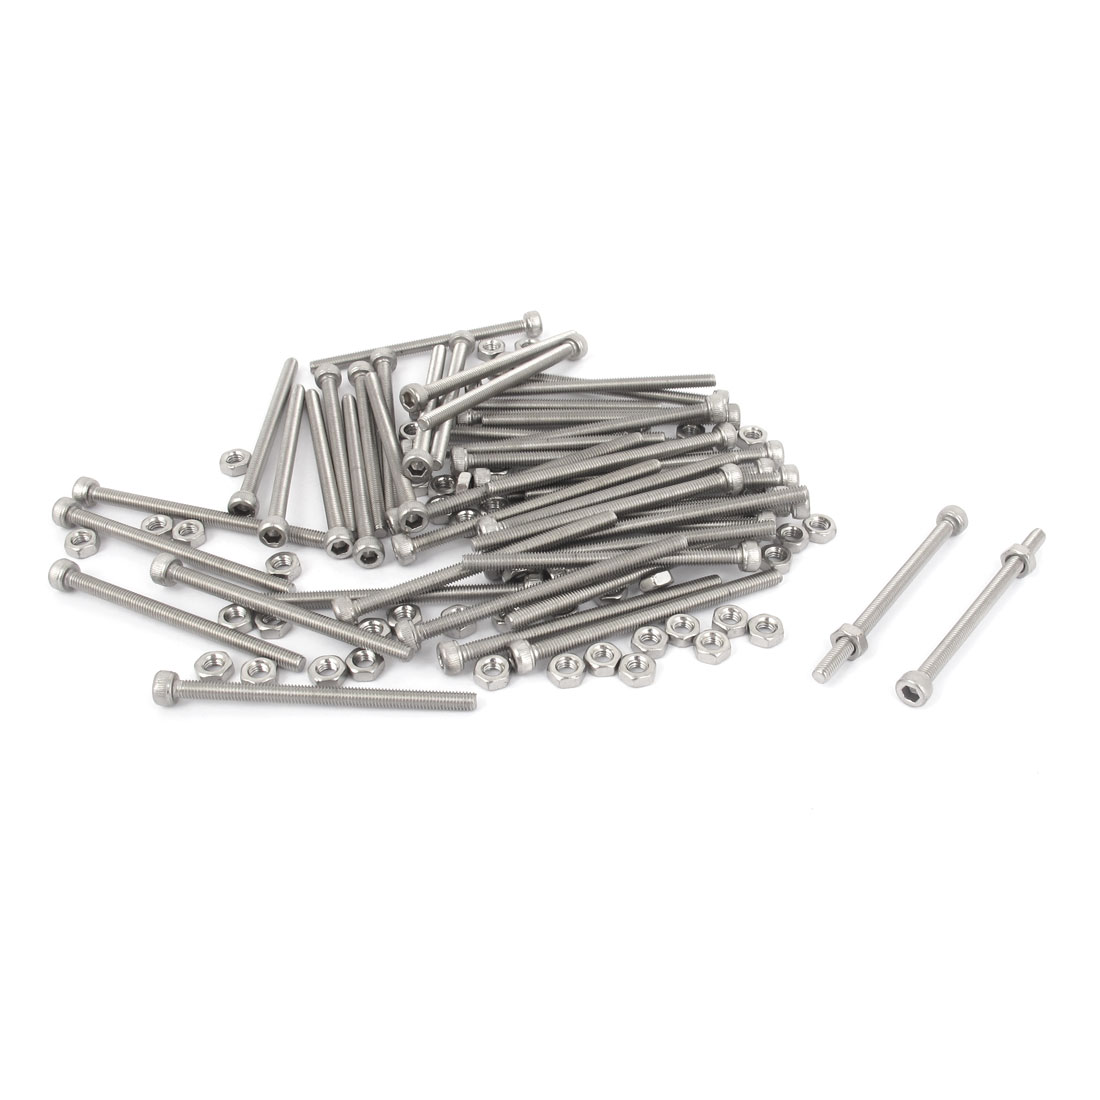 M3x45mm Stainless Steel Hex Socket Head Knurled Cap Screws Bolts Nut Set 50Pcs